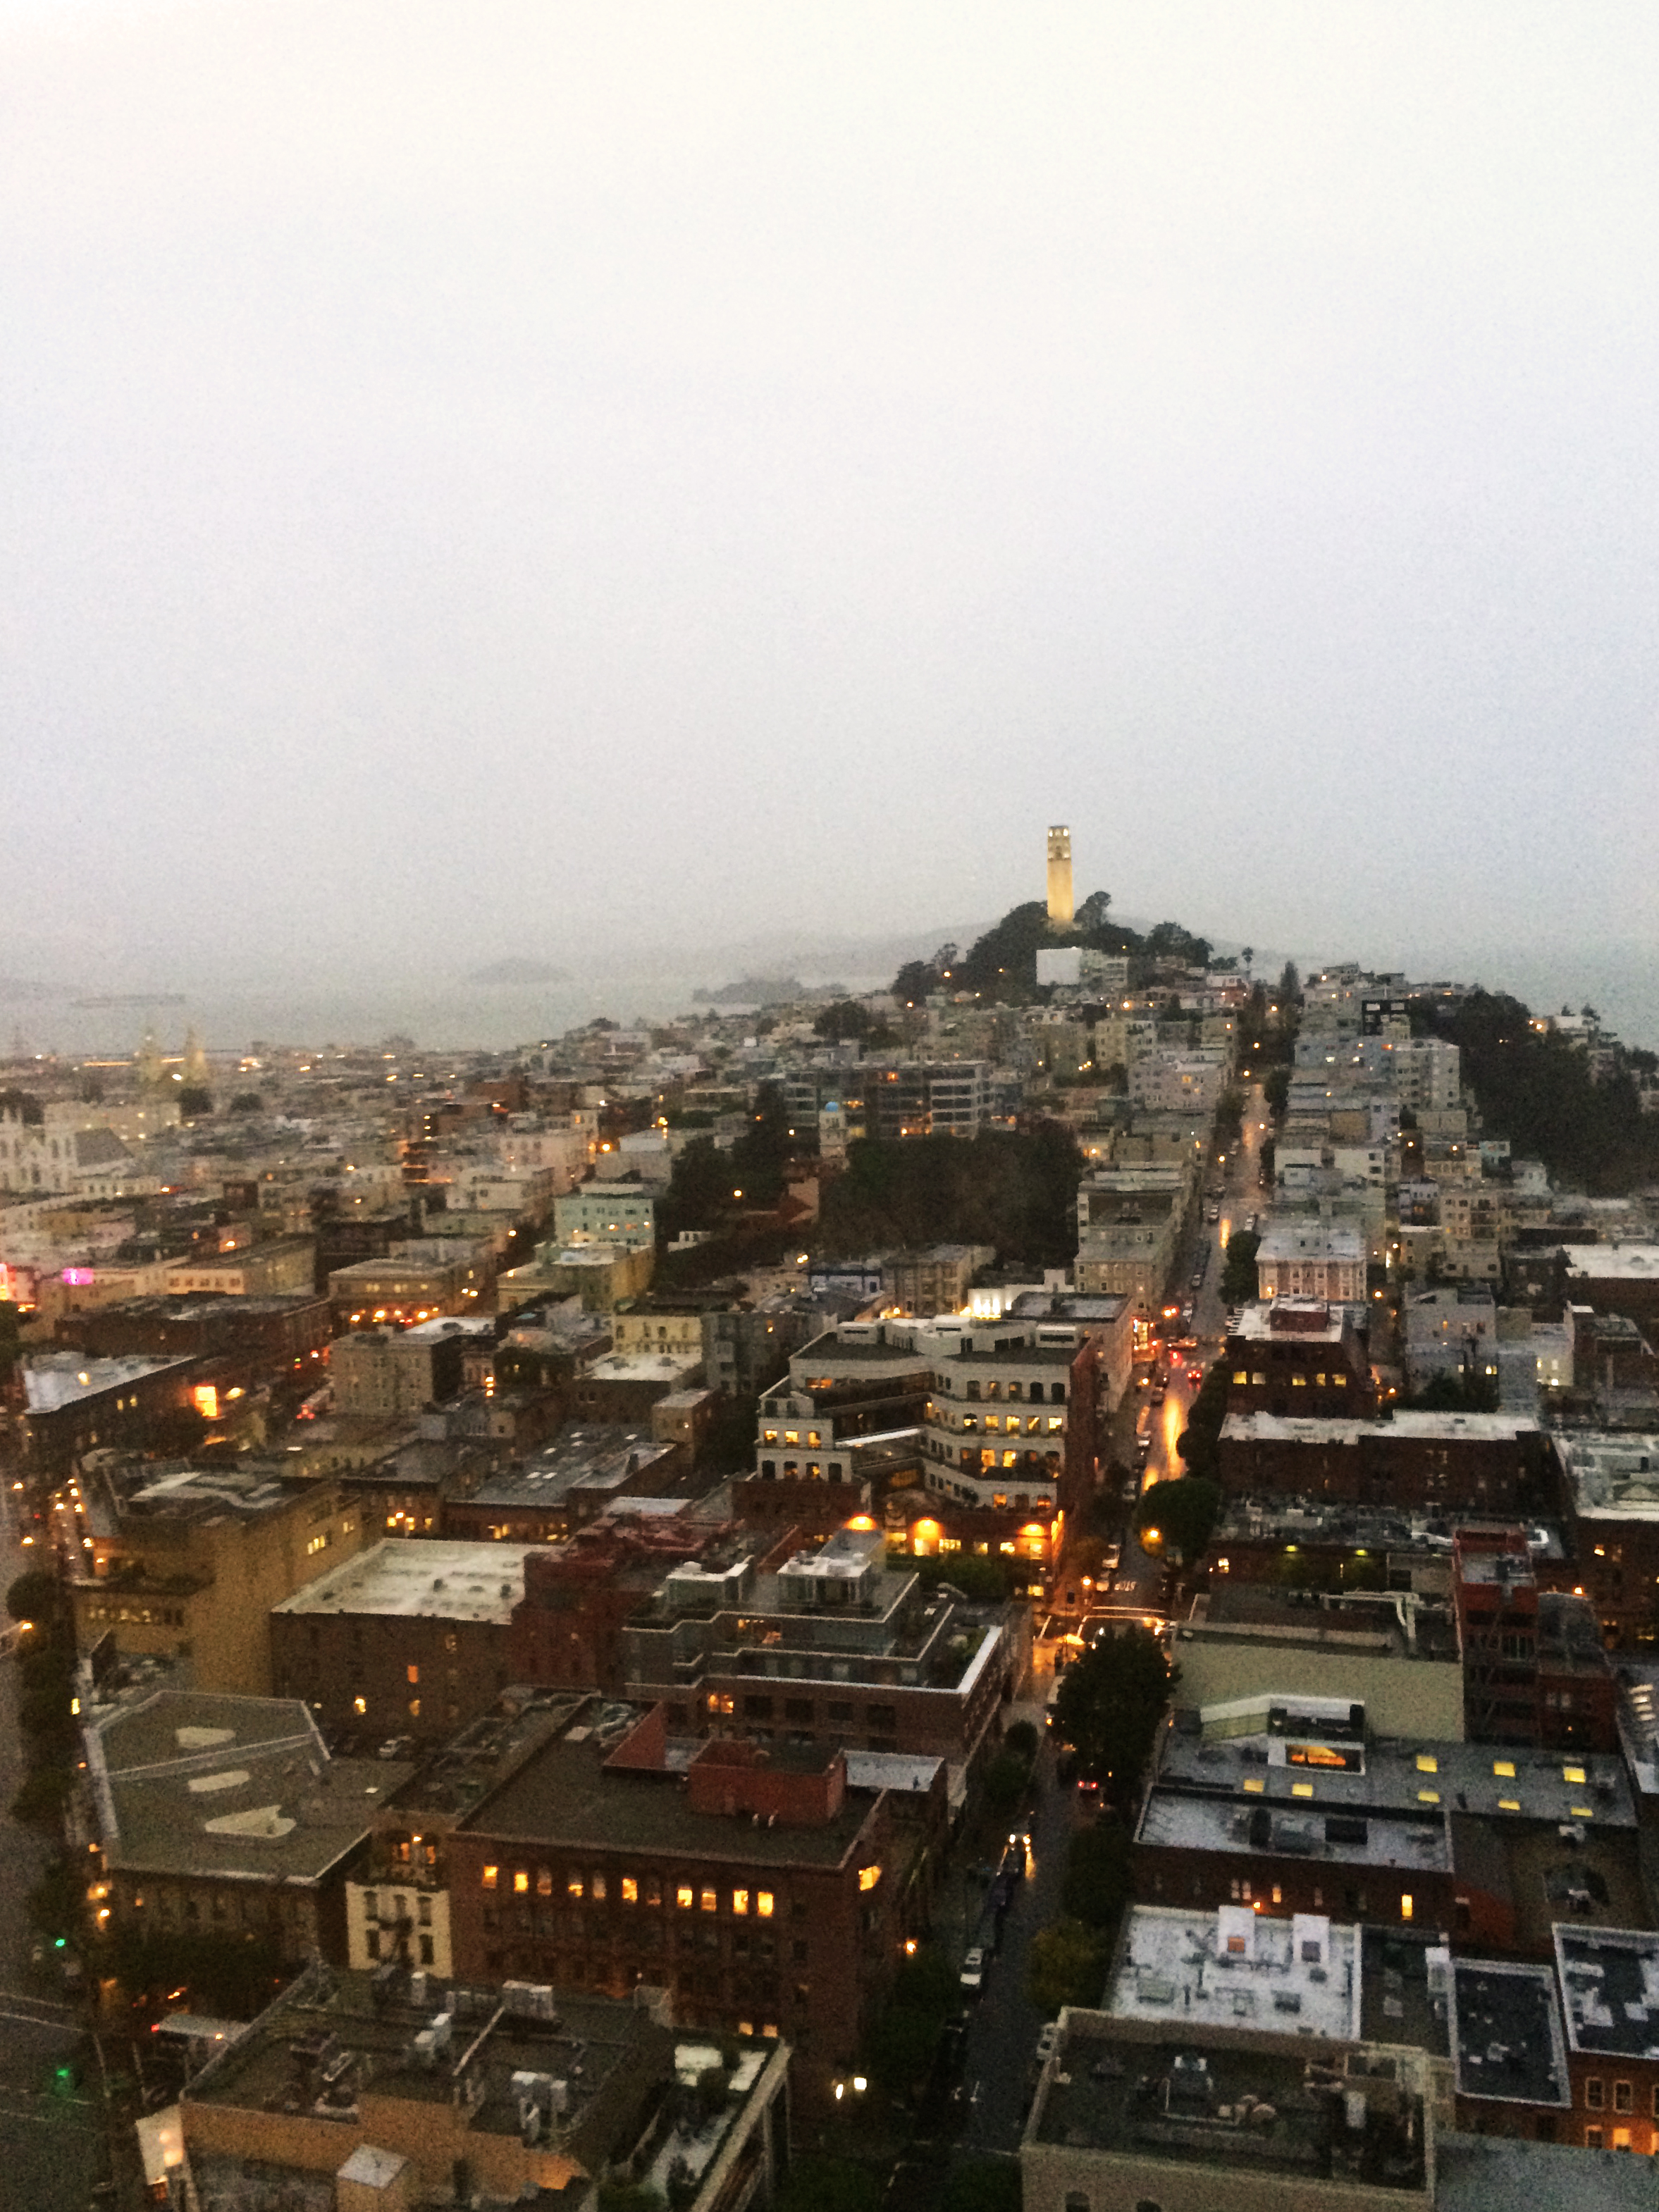 View from the 24th floor of the Transamerica Pyramid